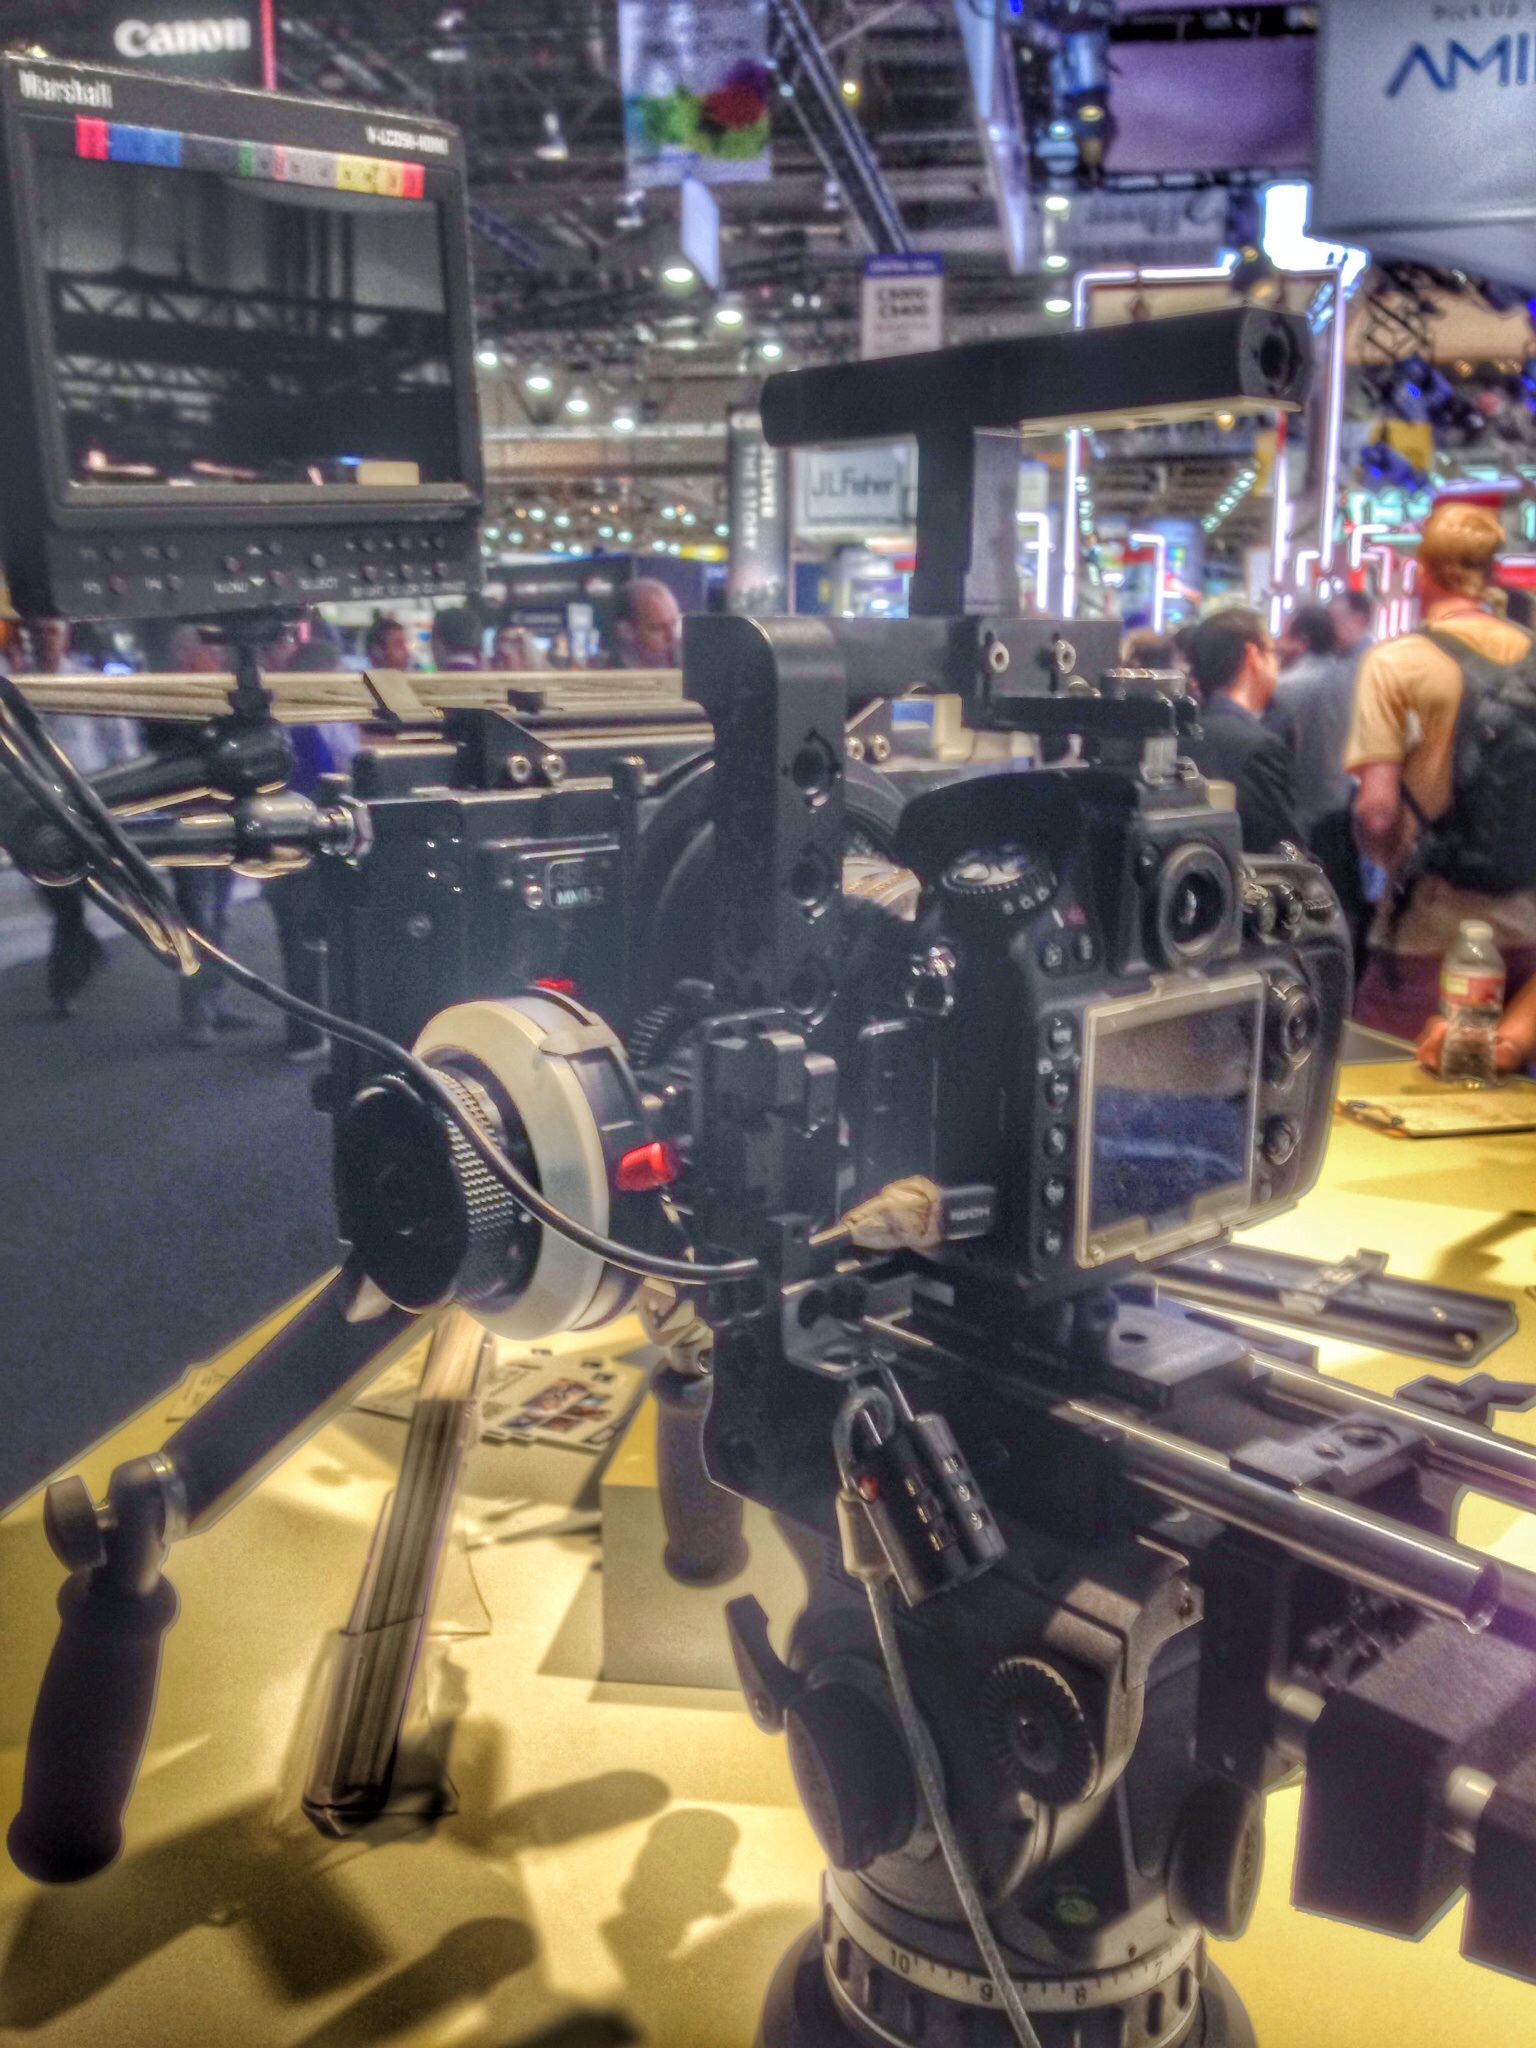 A DSLR camera rig from Arri